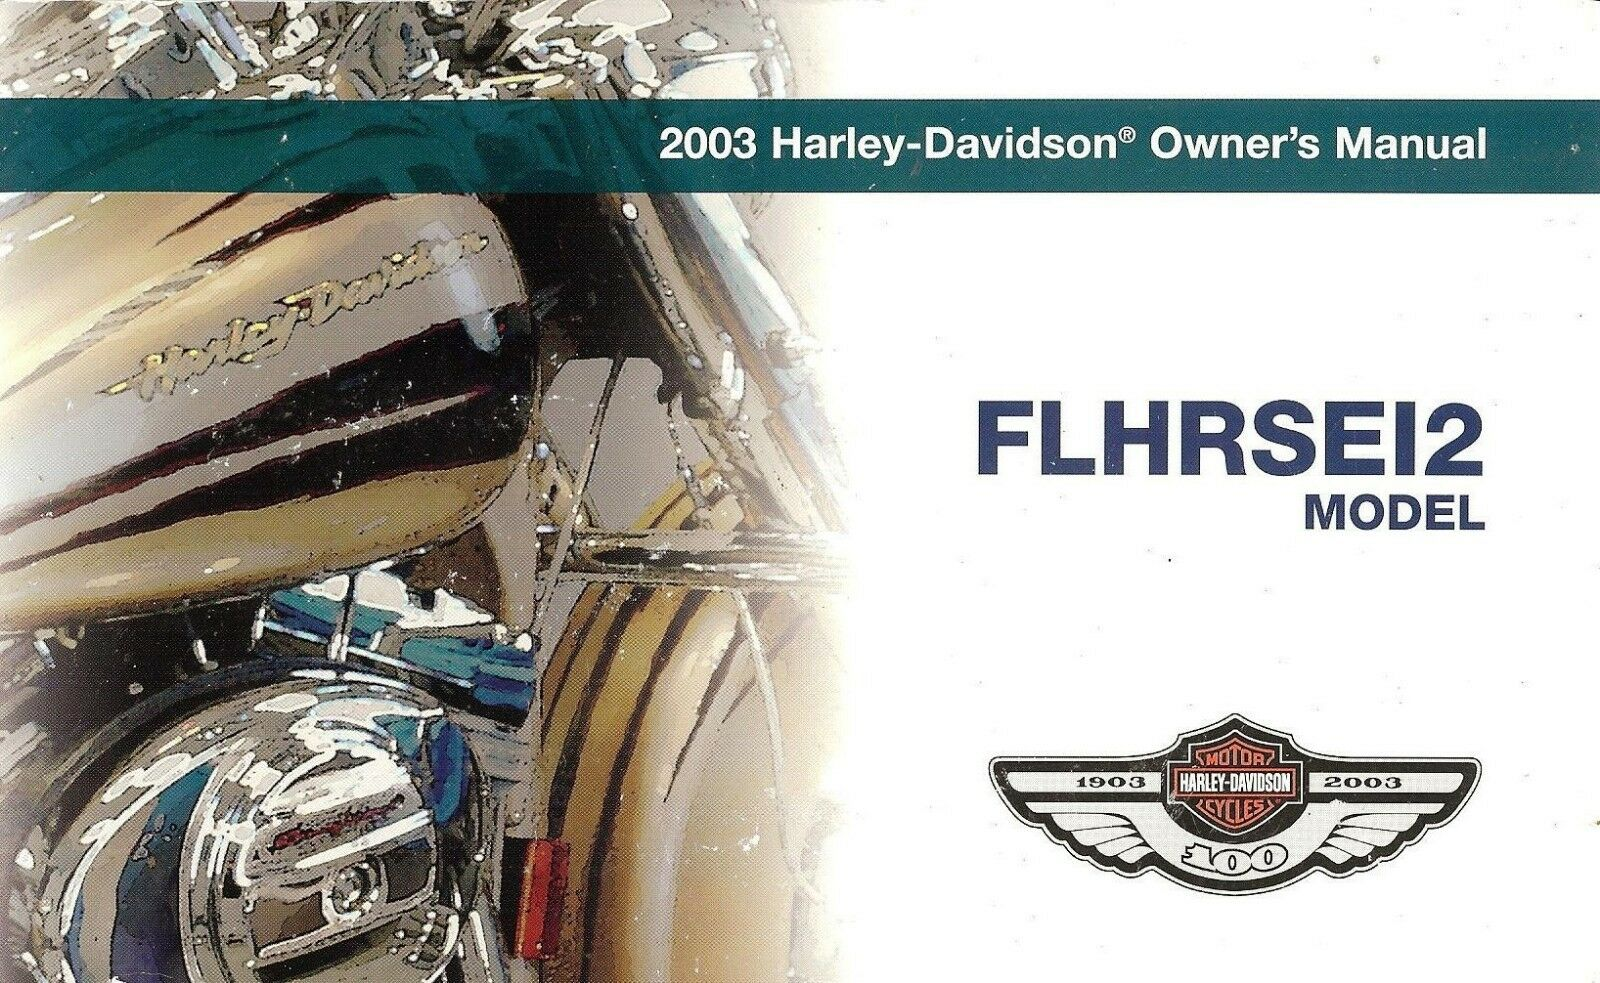 2003 Harley-Davidson CVO Flhrsei2 Road King 100th Anv Owners Manual -flhrsei